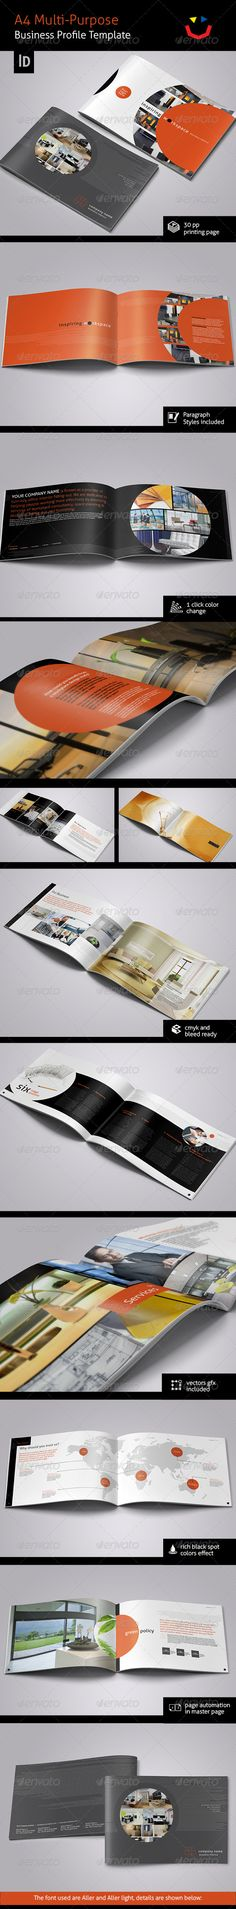 The brochure design is intend to use for Interior Design Firm or any related to design firms